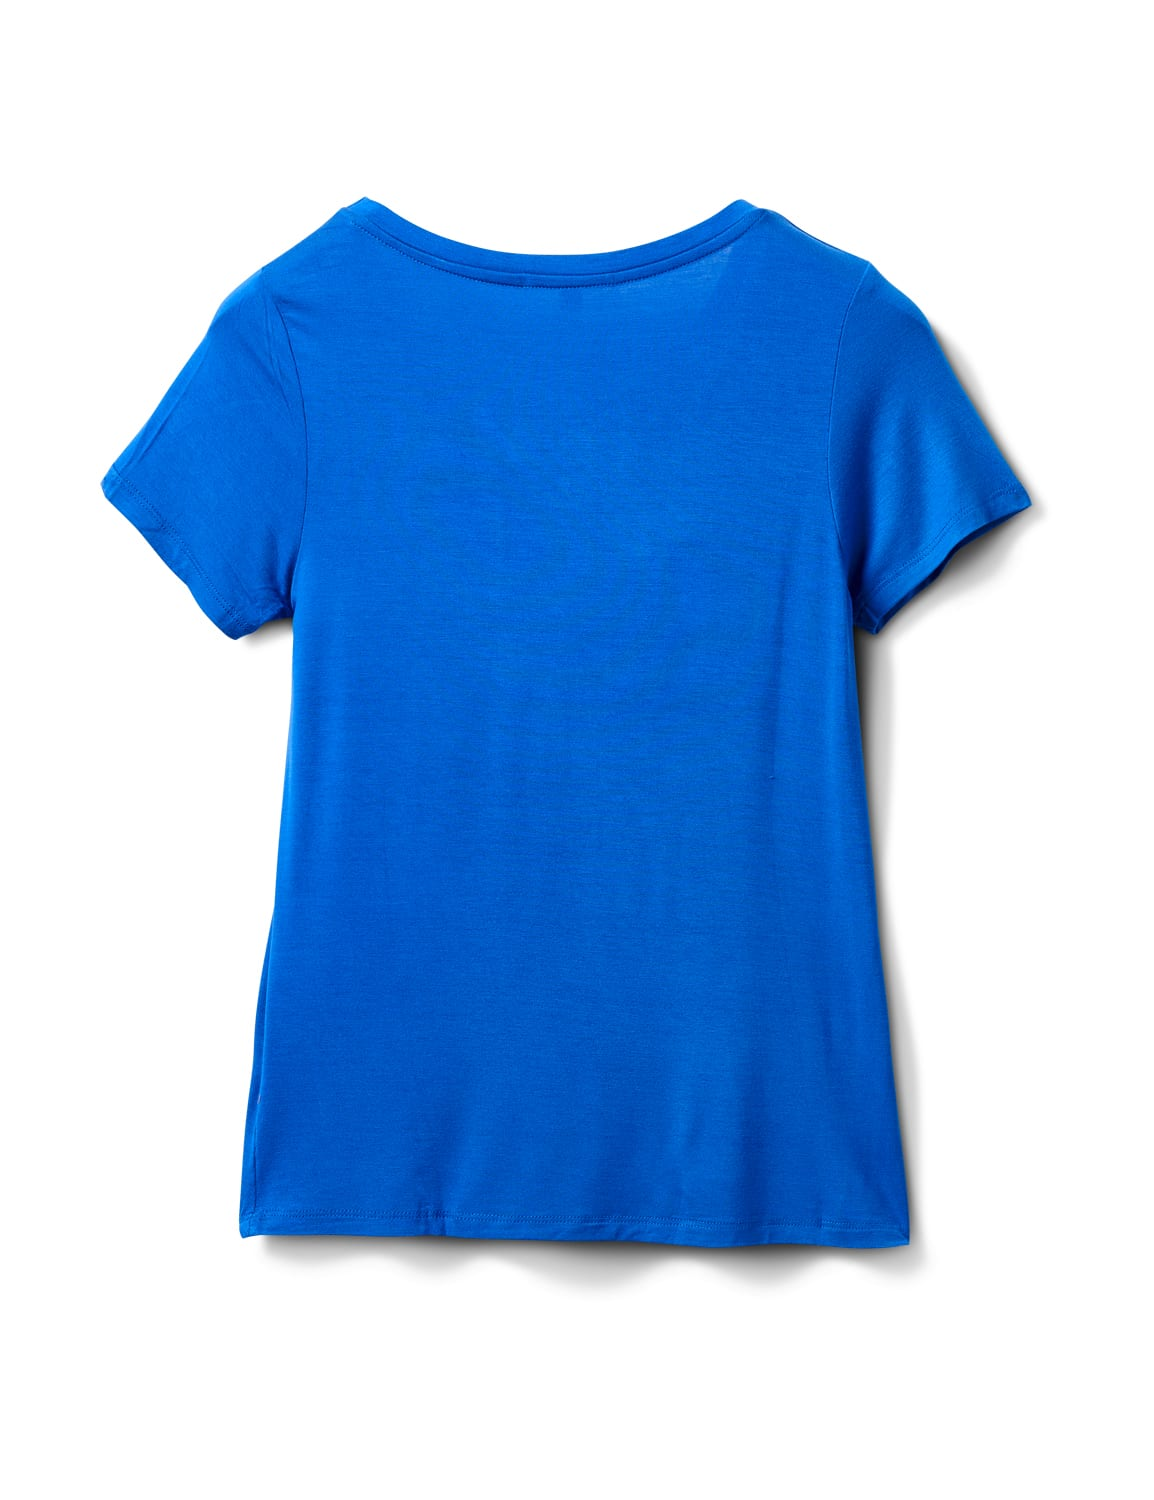 Rayon Span V-Neck Tee - Royal Blue - Back